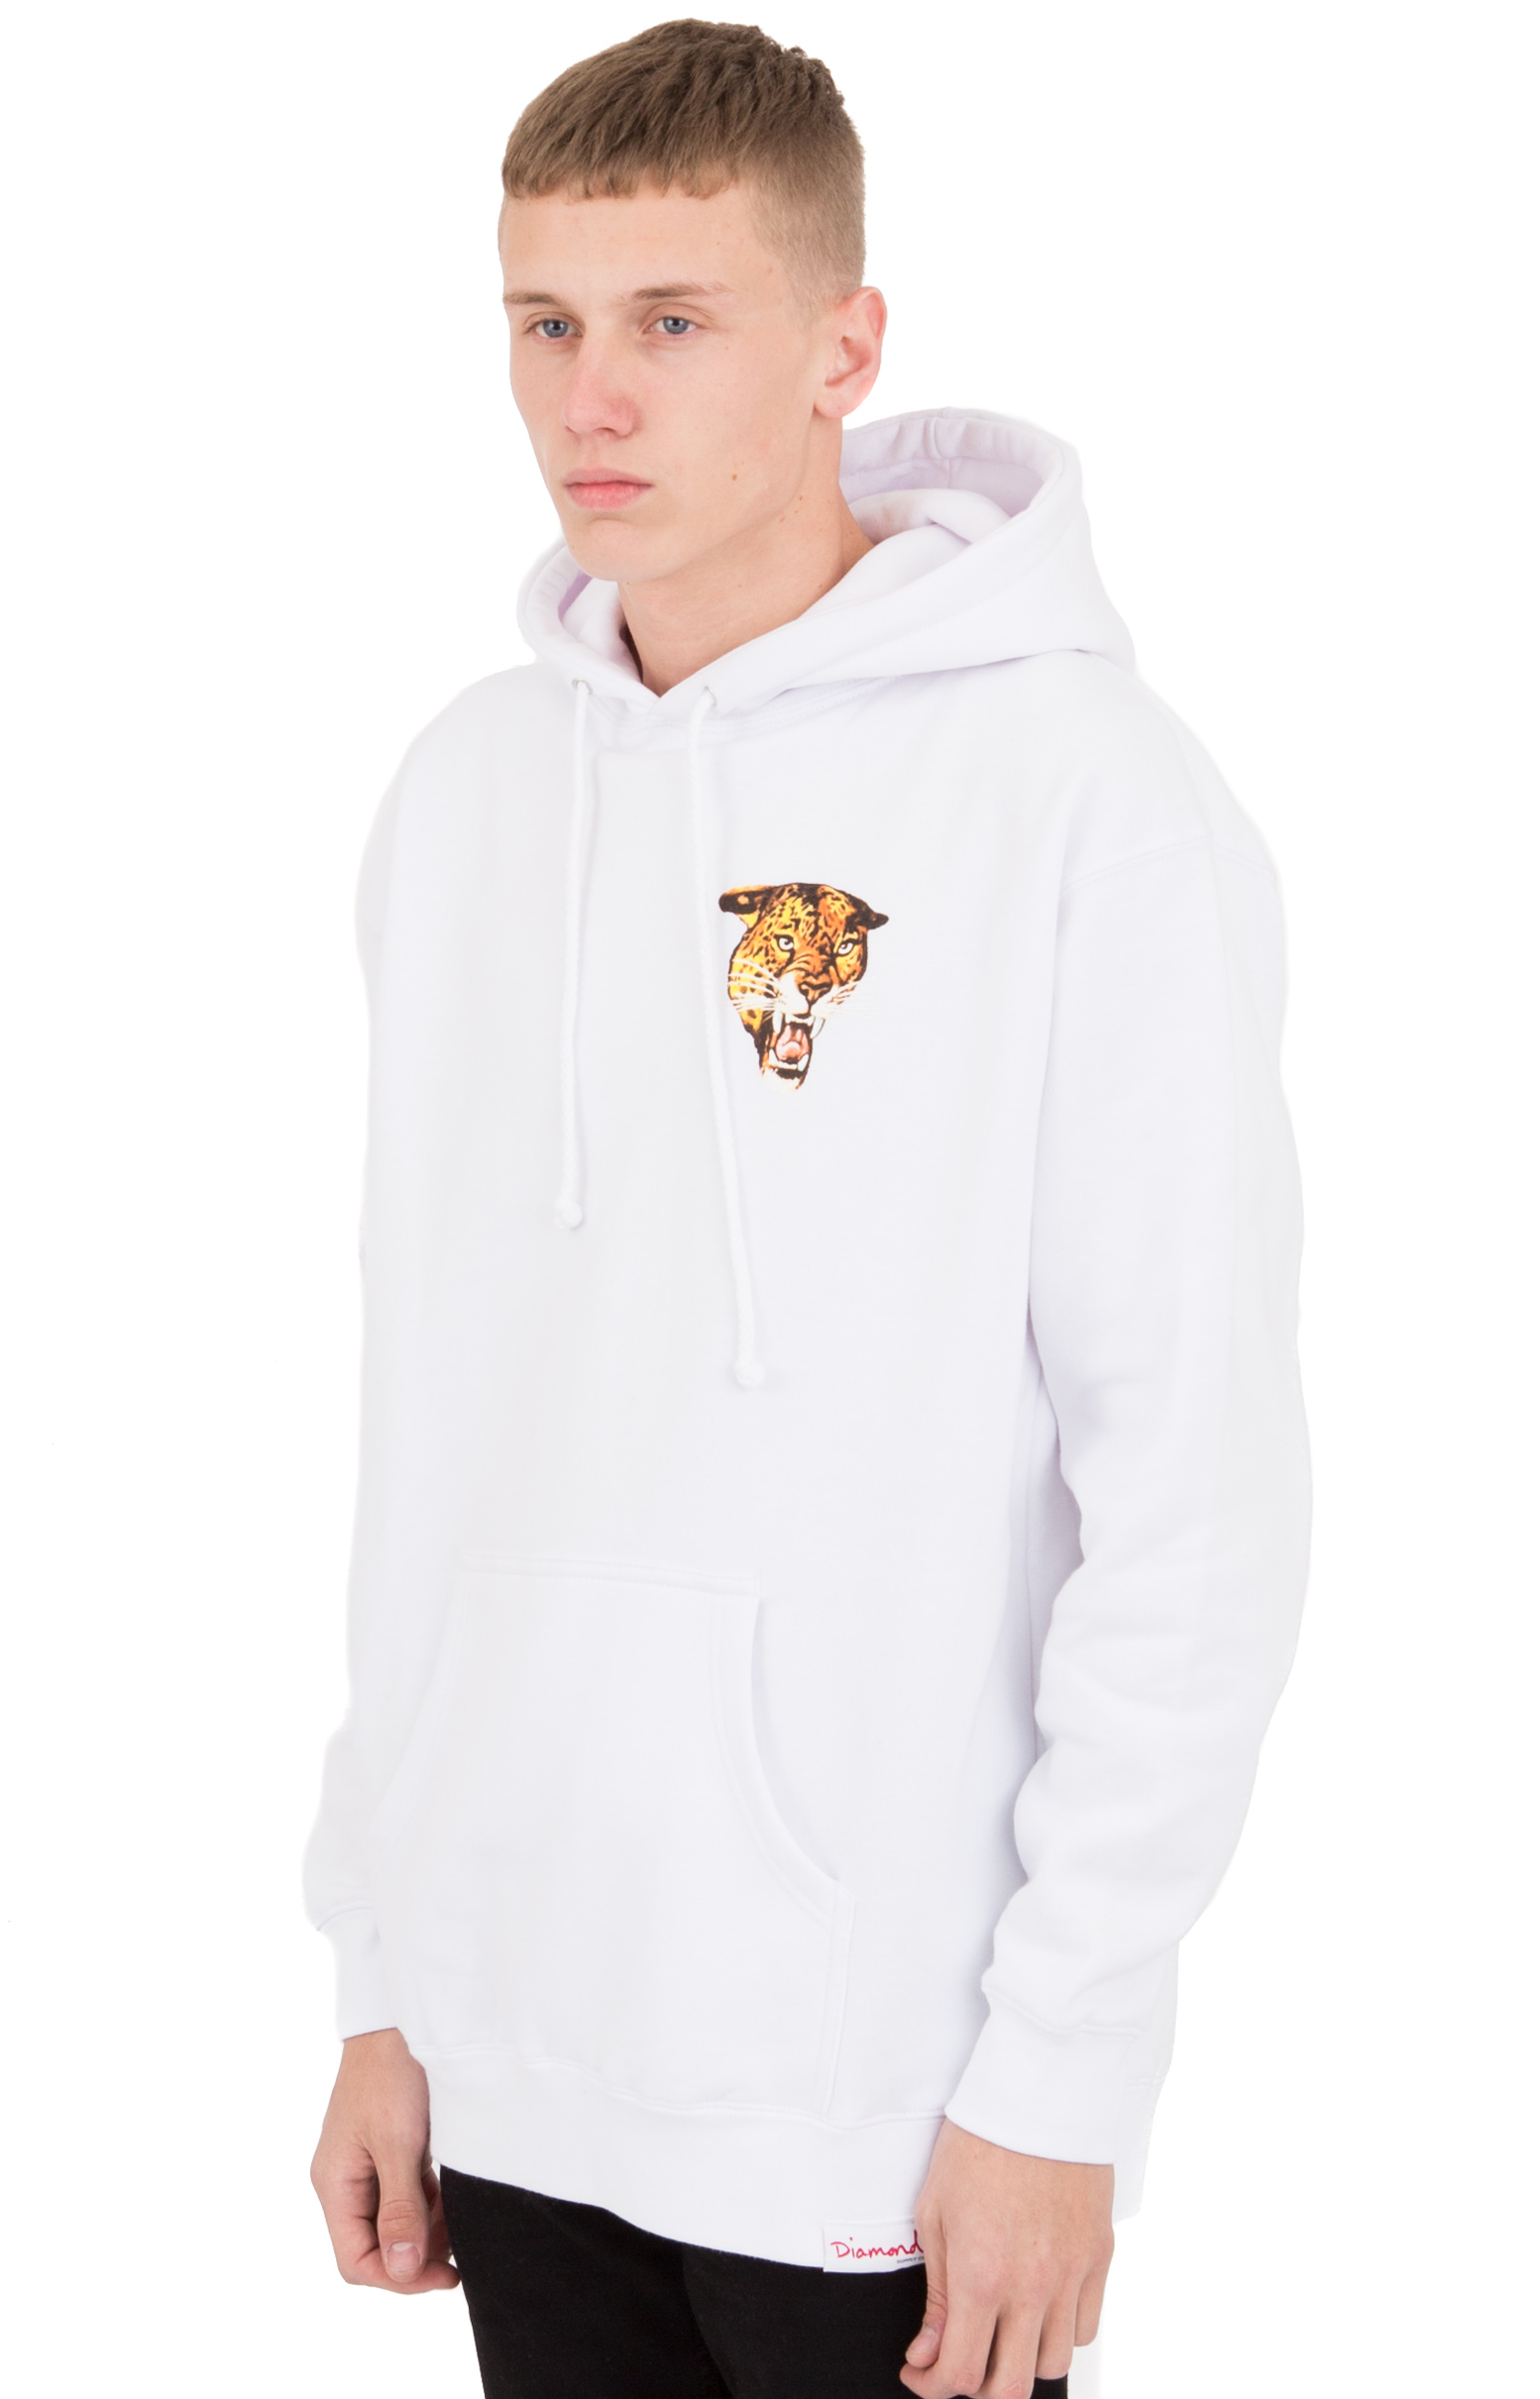 Gulf Pullover Hoodie - White 3